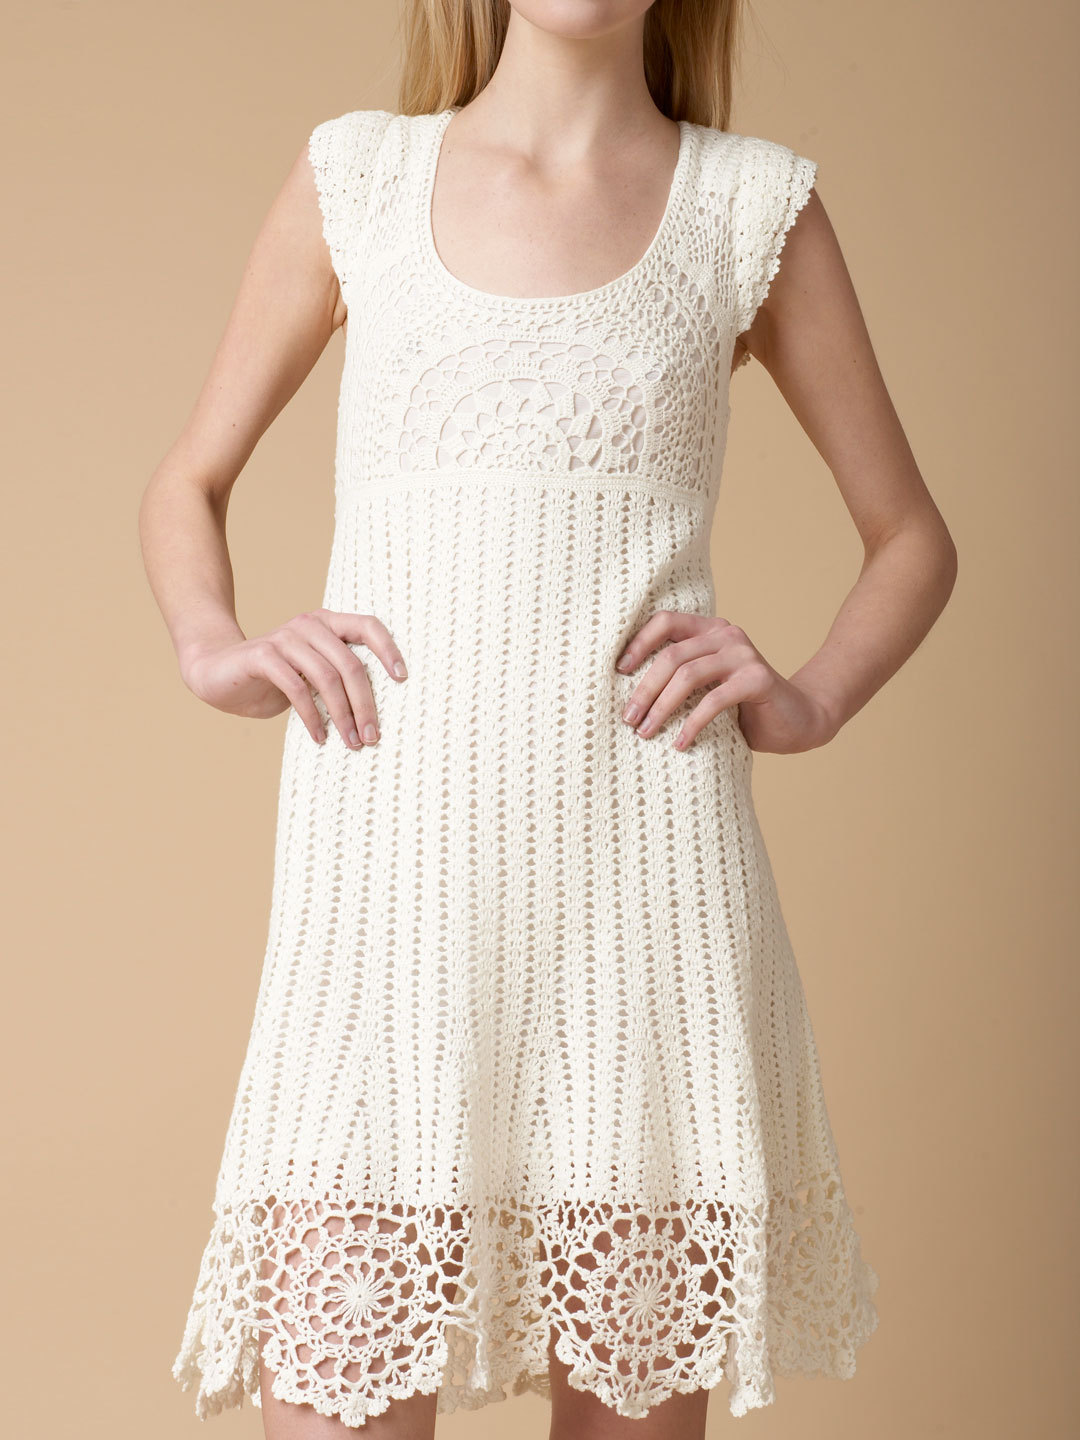 Just Go With It Jennifer Aniston Crochet Dress Enchanted crochet dress